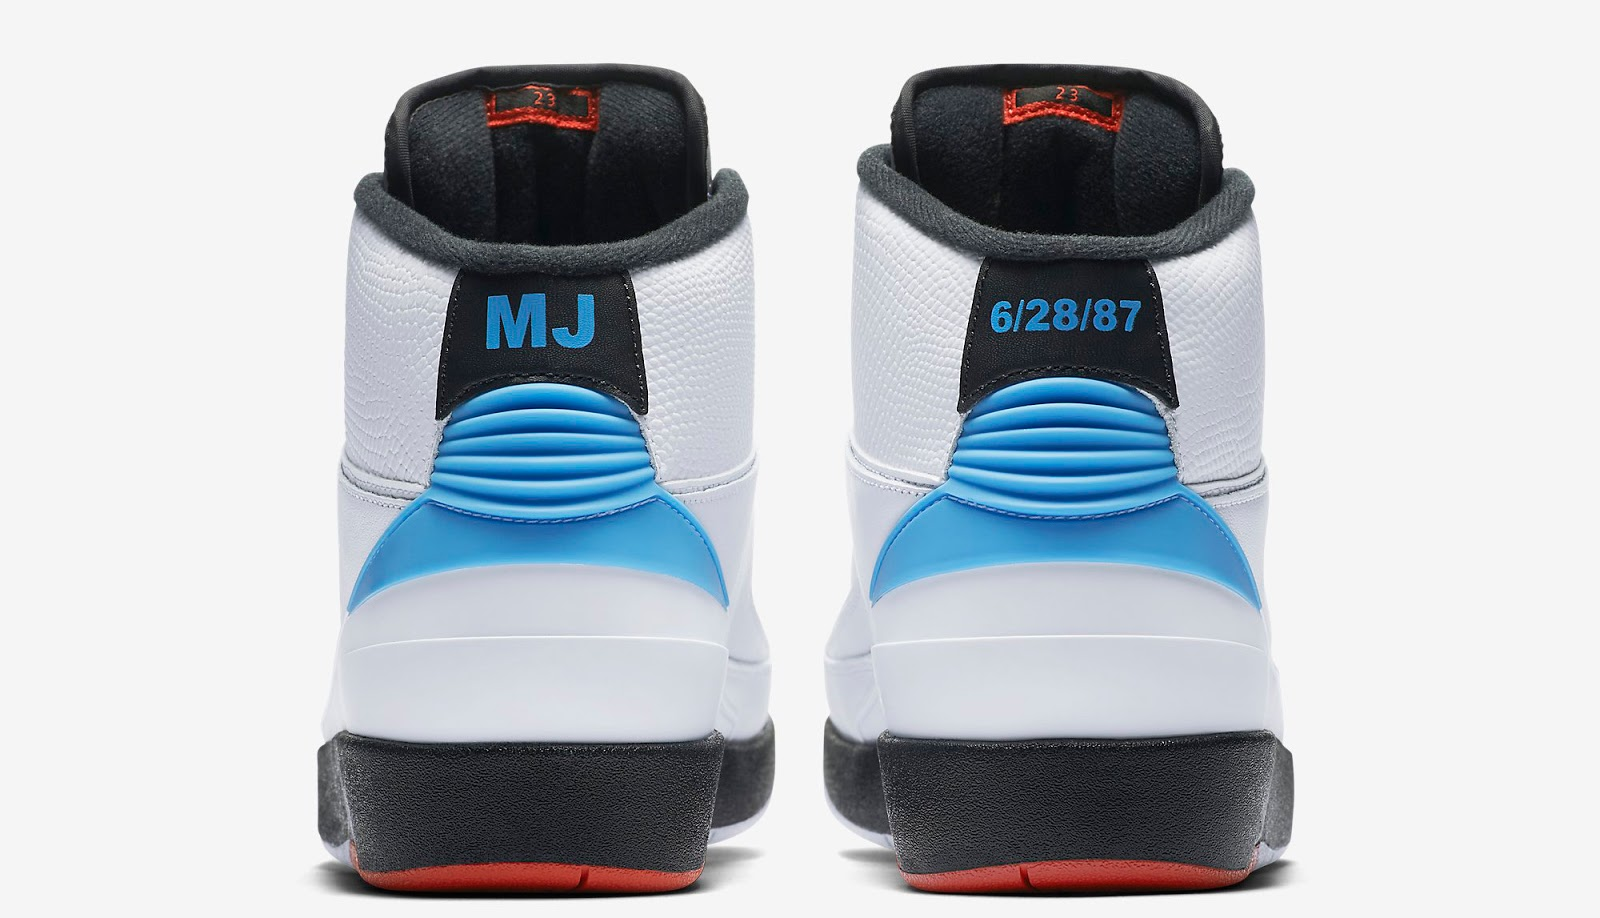 155db83d601a24 ajordanxi Your  1 Source For Sneaker Release Dates  Air Jordan x ...